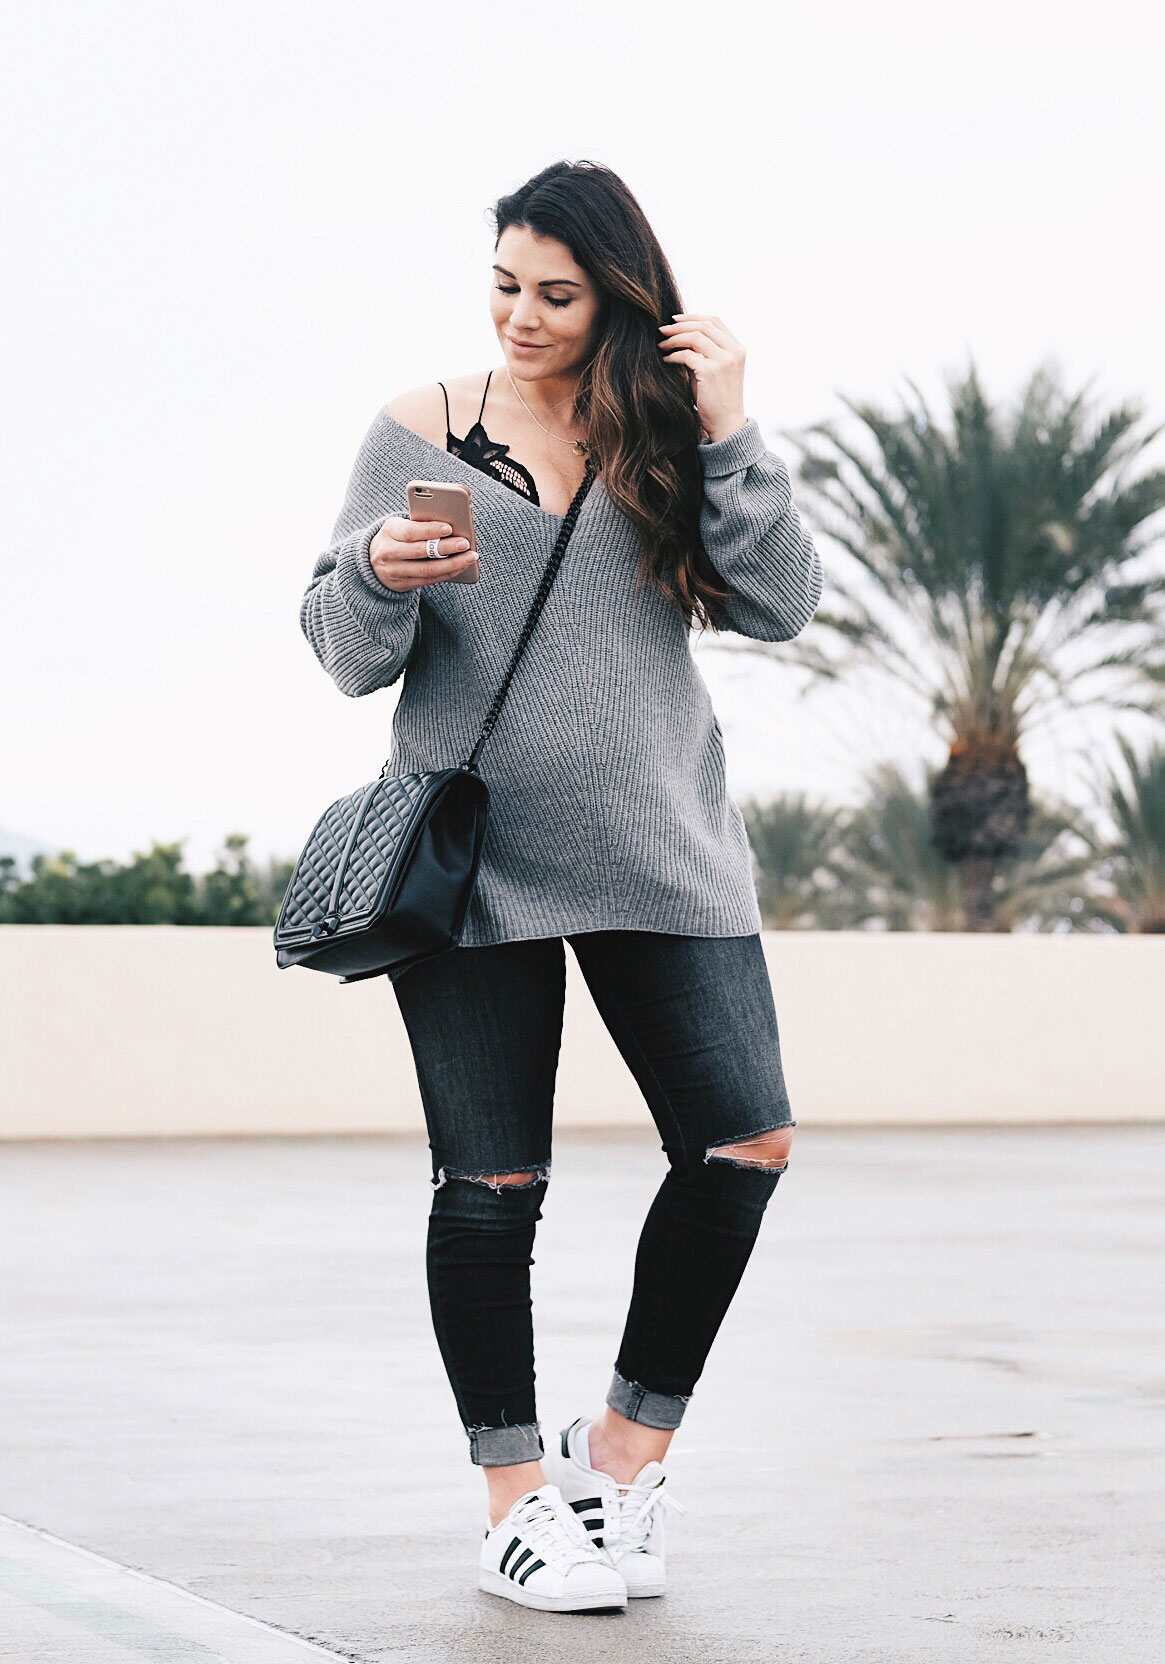 Second trimester maternity outfit.  V-neck sweater with Free People Adella bralette, gray distressed maternity jeans, and Adidas sneakers.